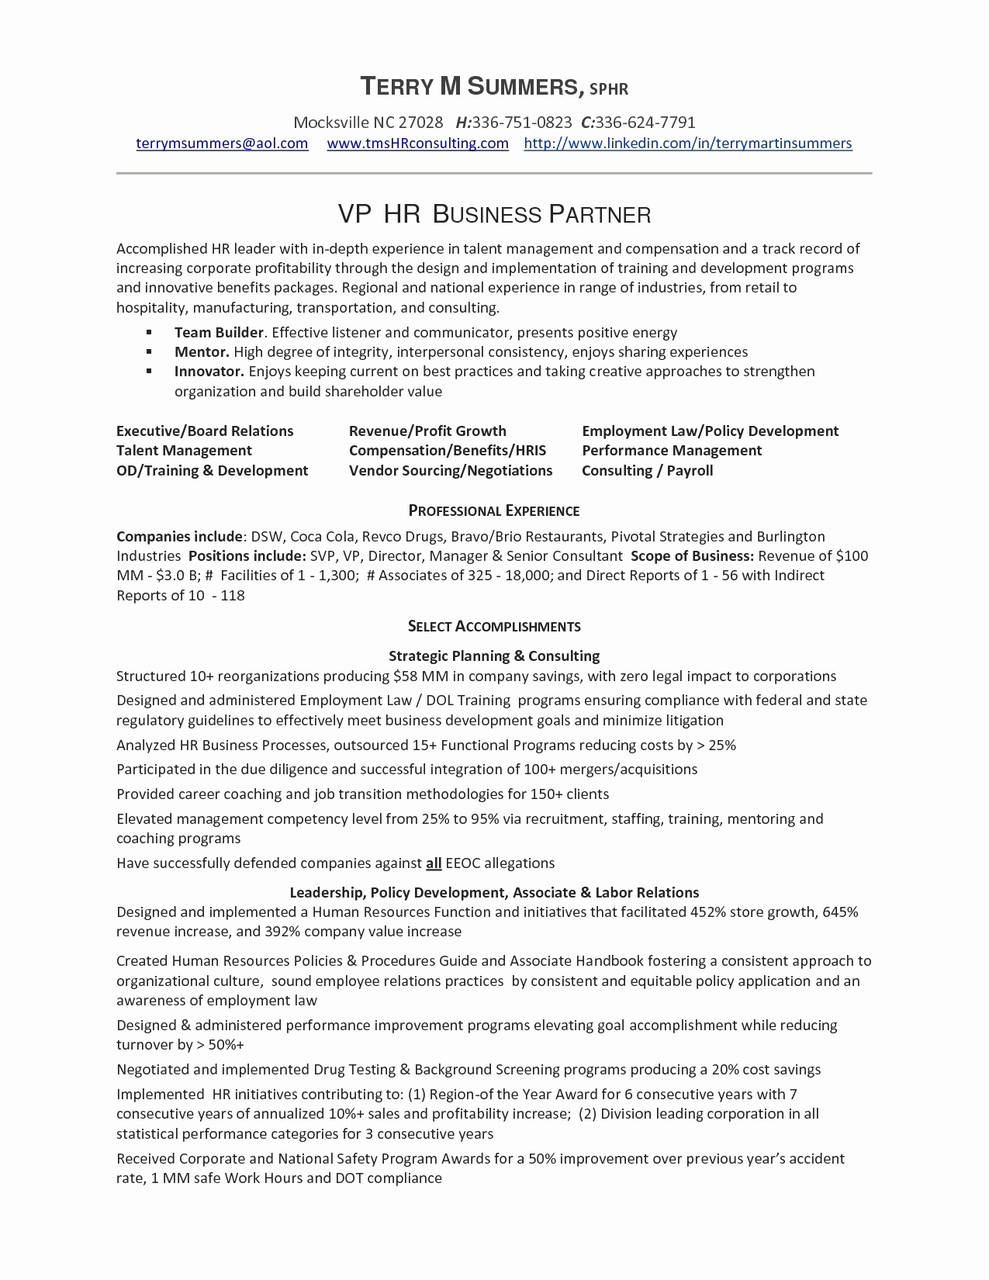 Resumes Planet Reviews - Resume Writing Group